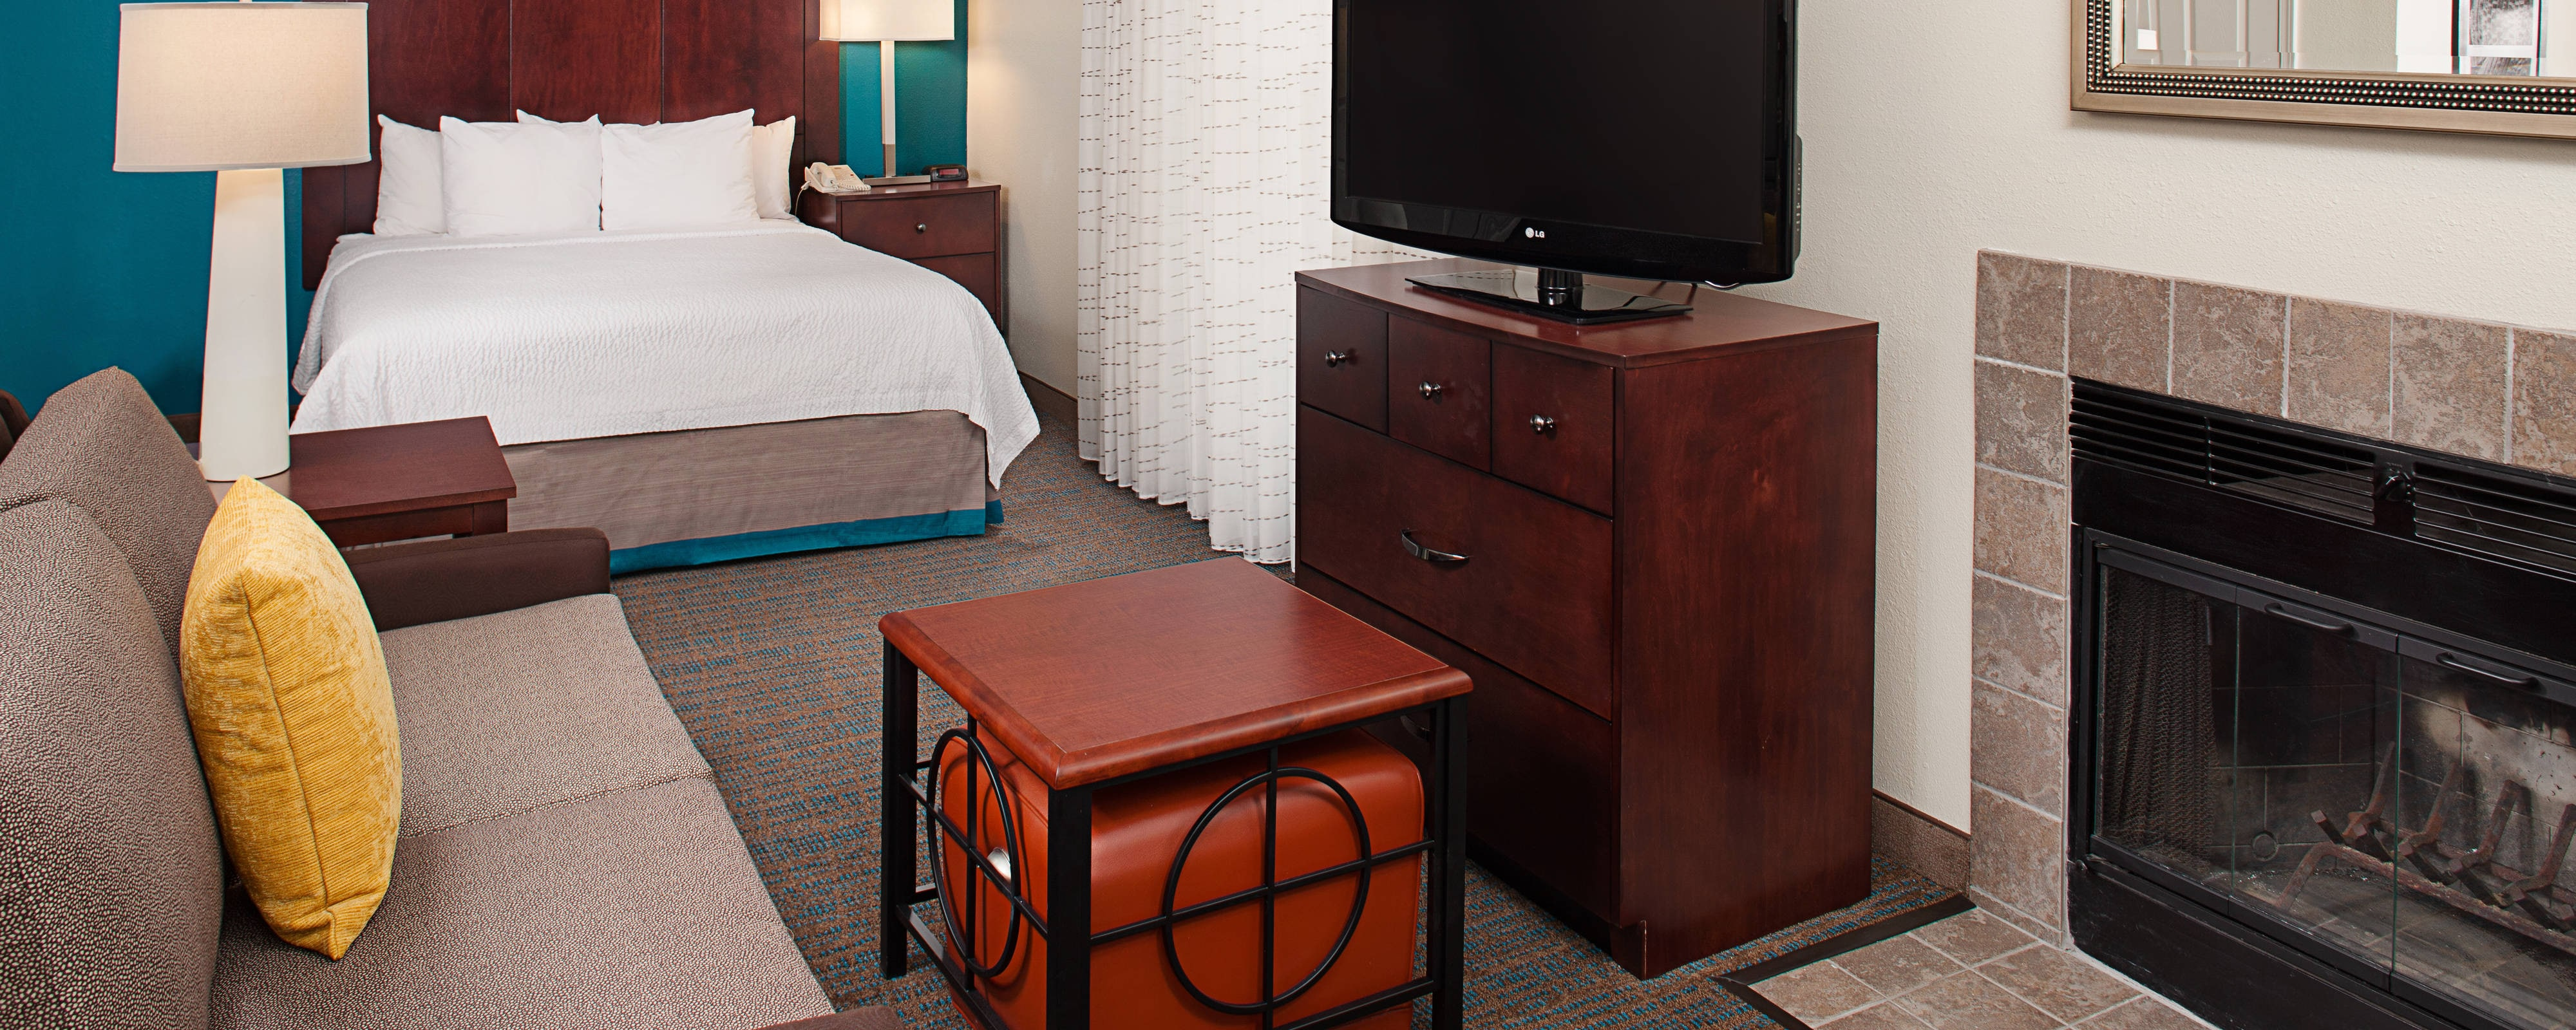 Suite Studio au Residence Inn Seattle Bellevue